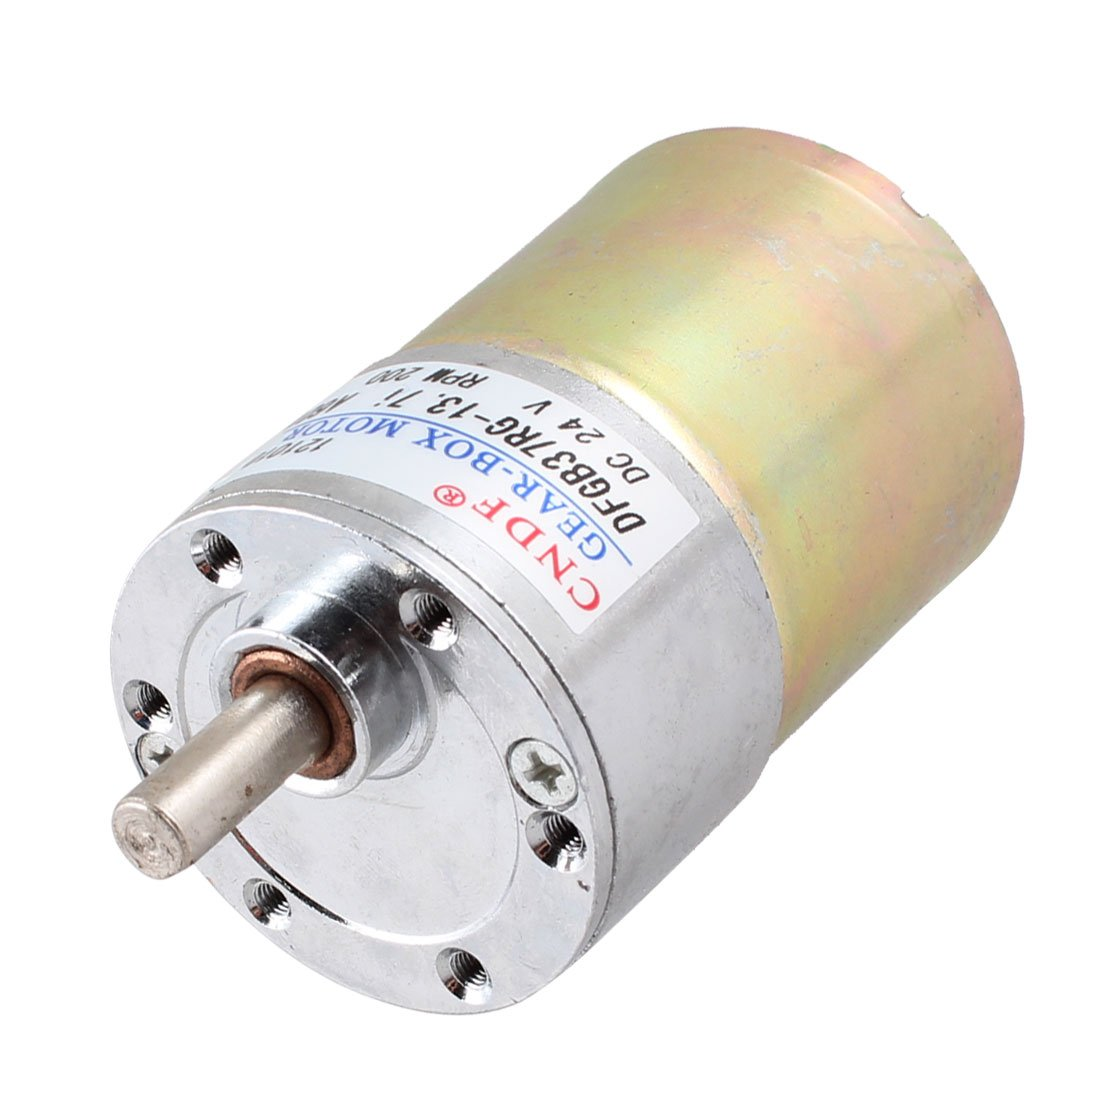 uxcell 24V DC 200RPM 6mm Shaft Magnetic Electric Gear Box Motor Replacement